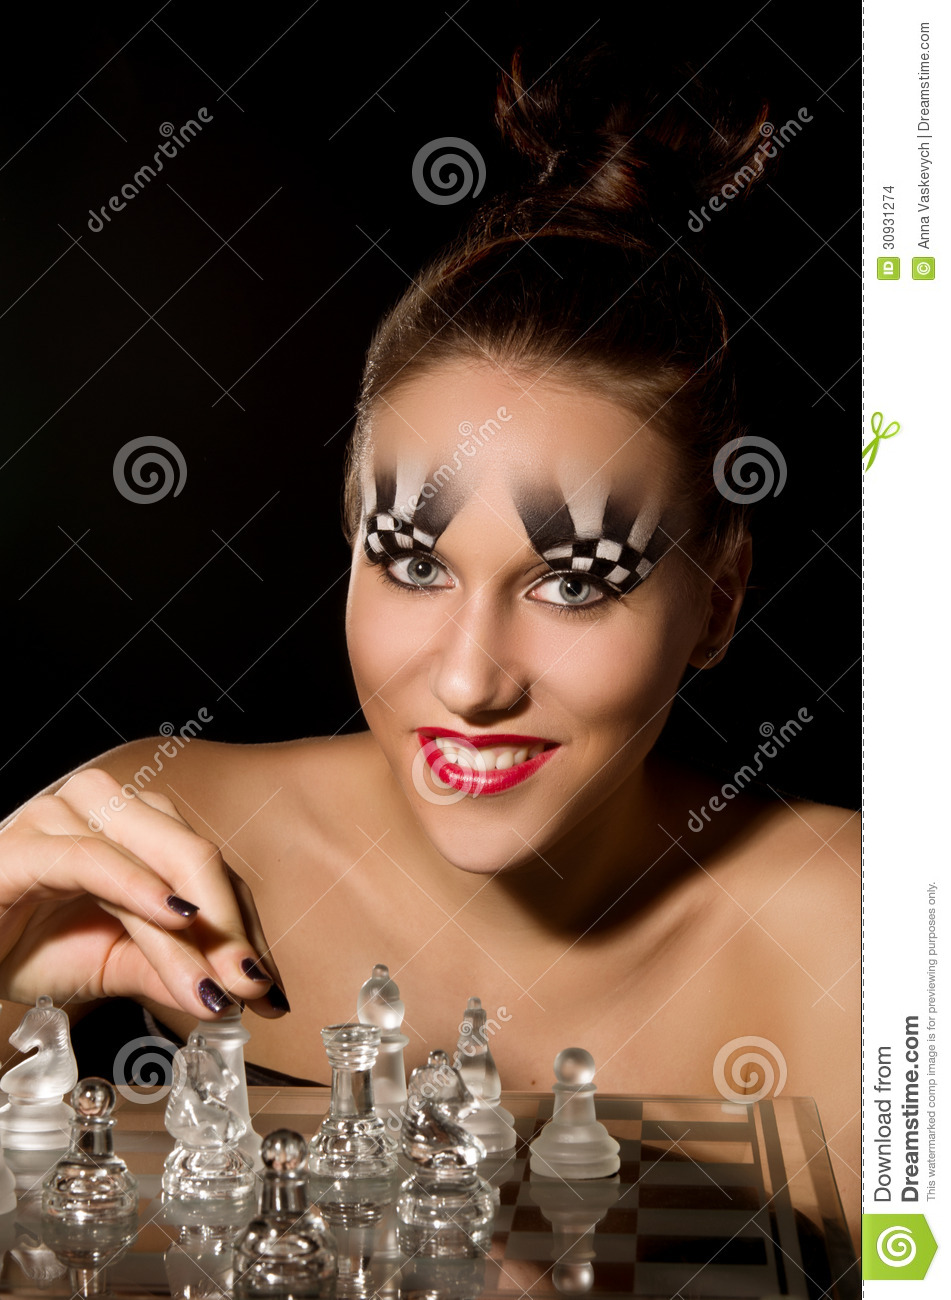 Make Up Art In The Form Of Chessboard Stock Photo Image Of